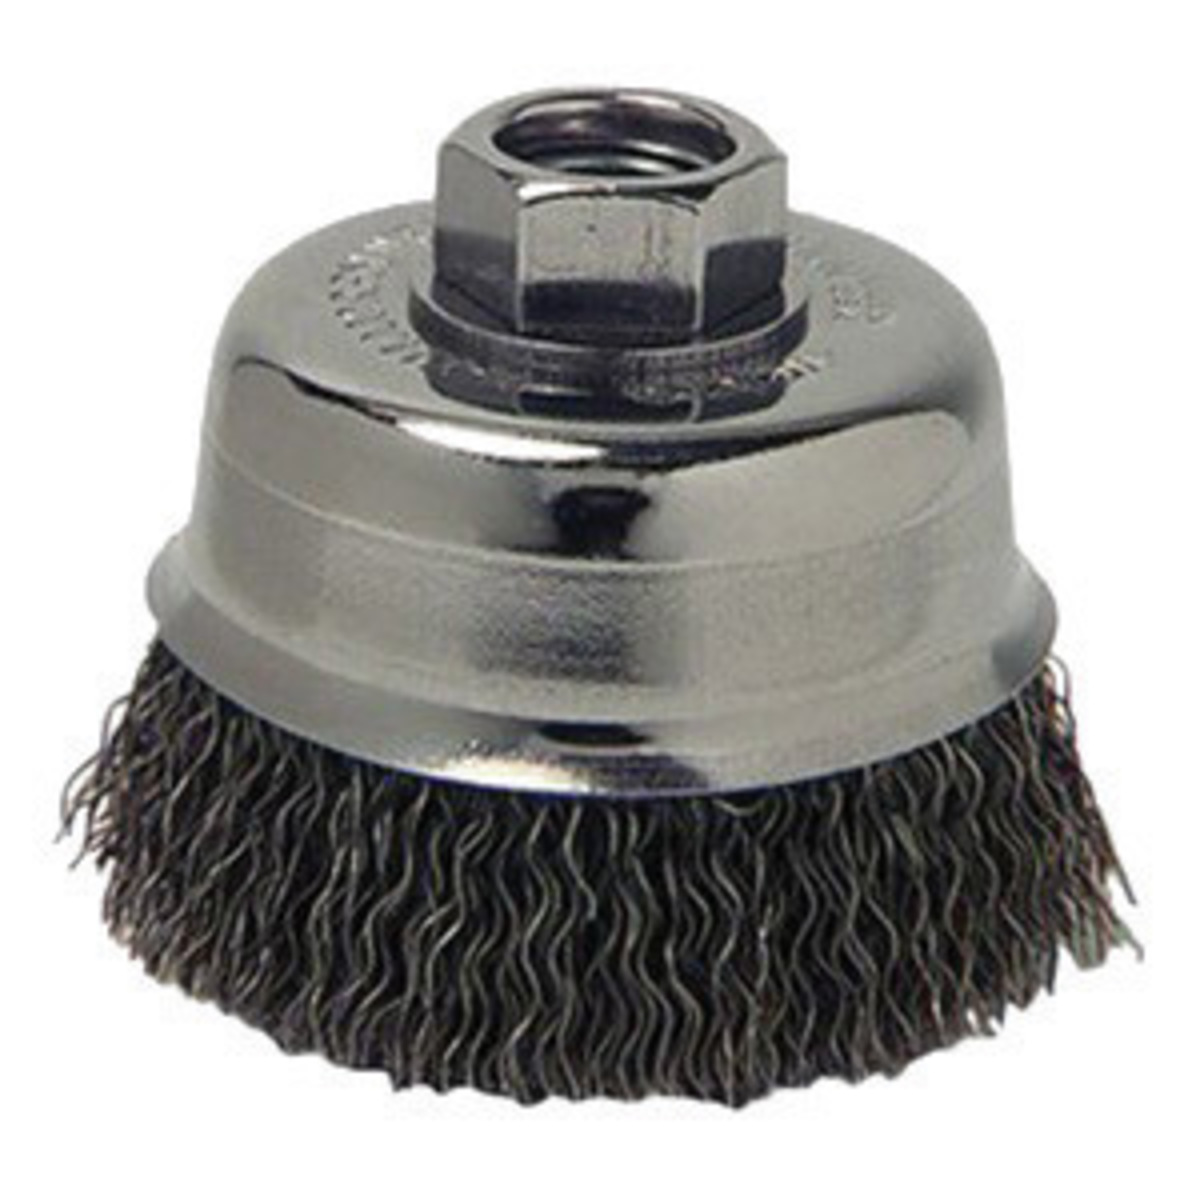 Luomorgo 2 Pcs 4 Wire Wheel Brush /& Wire Cup Brush with M14 x 2mm Threaded Arbor for Grinders Twist Knotted Angle Grinders